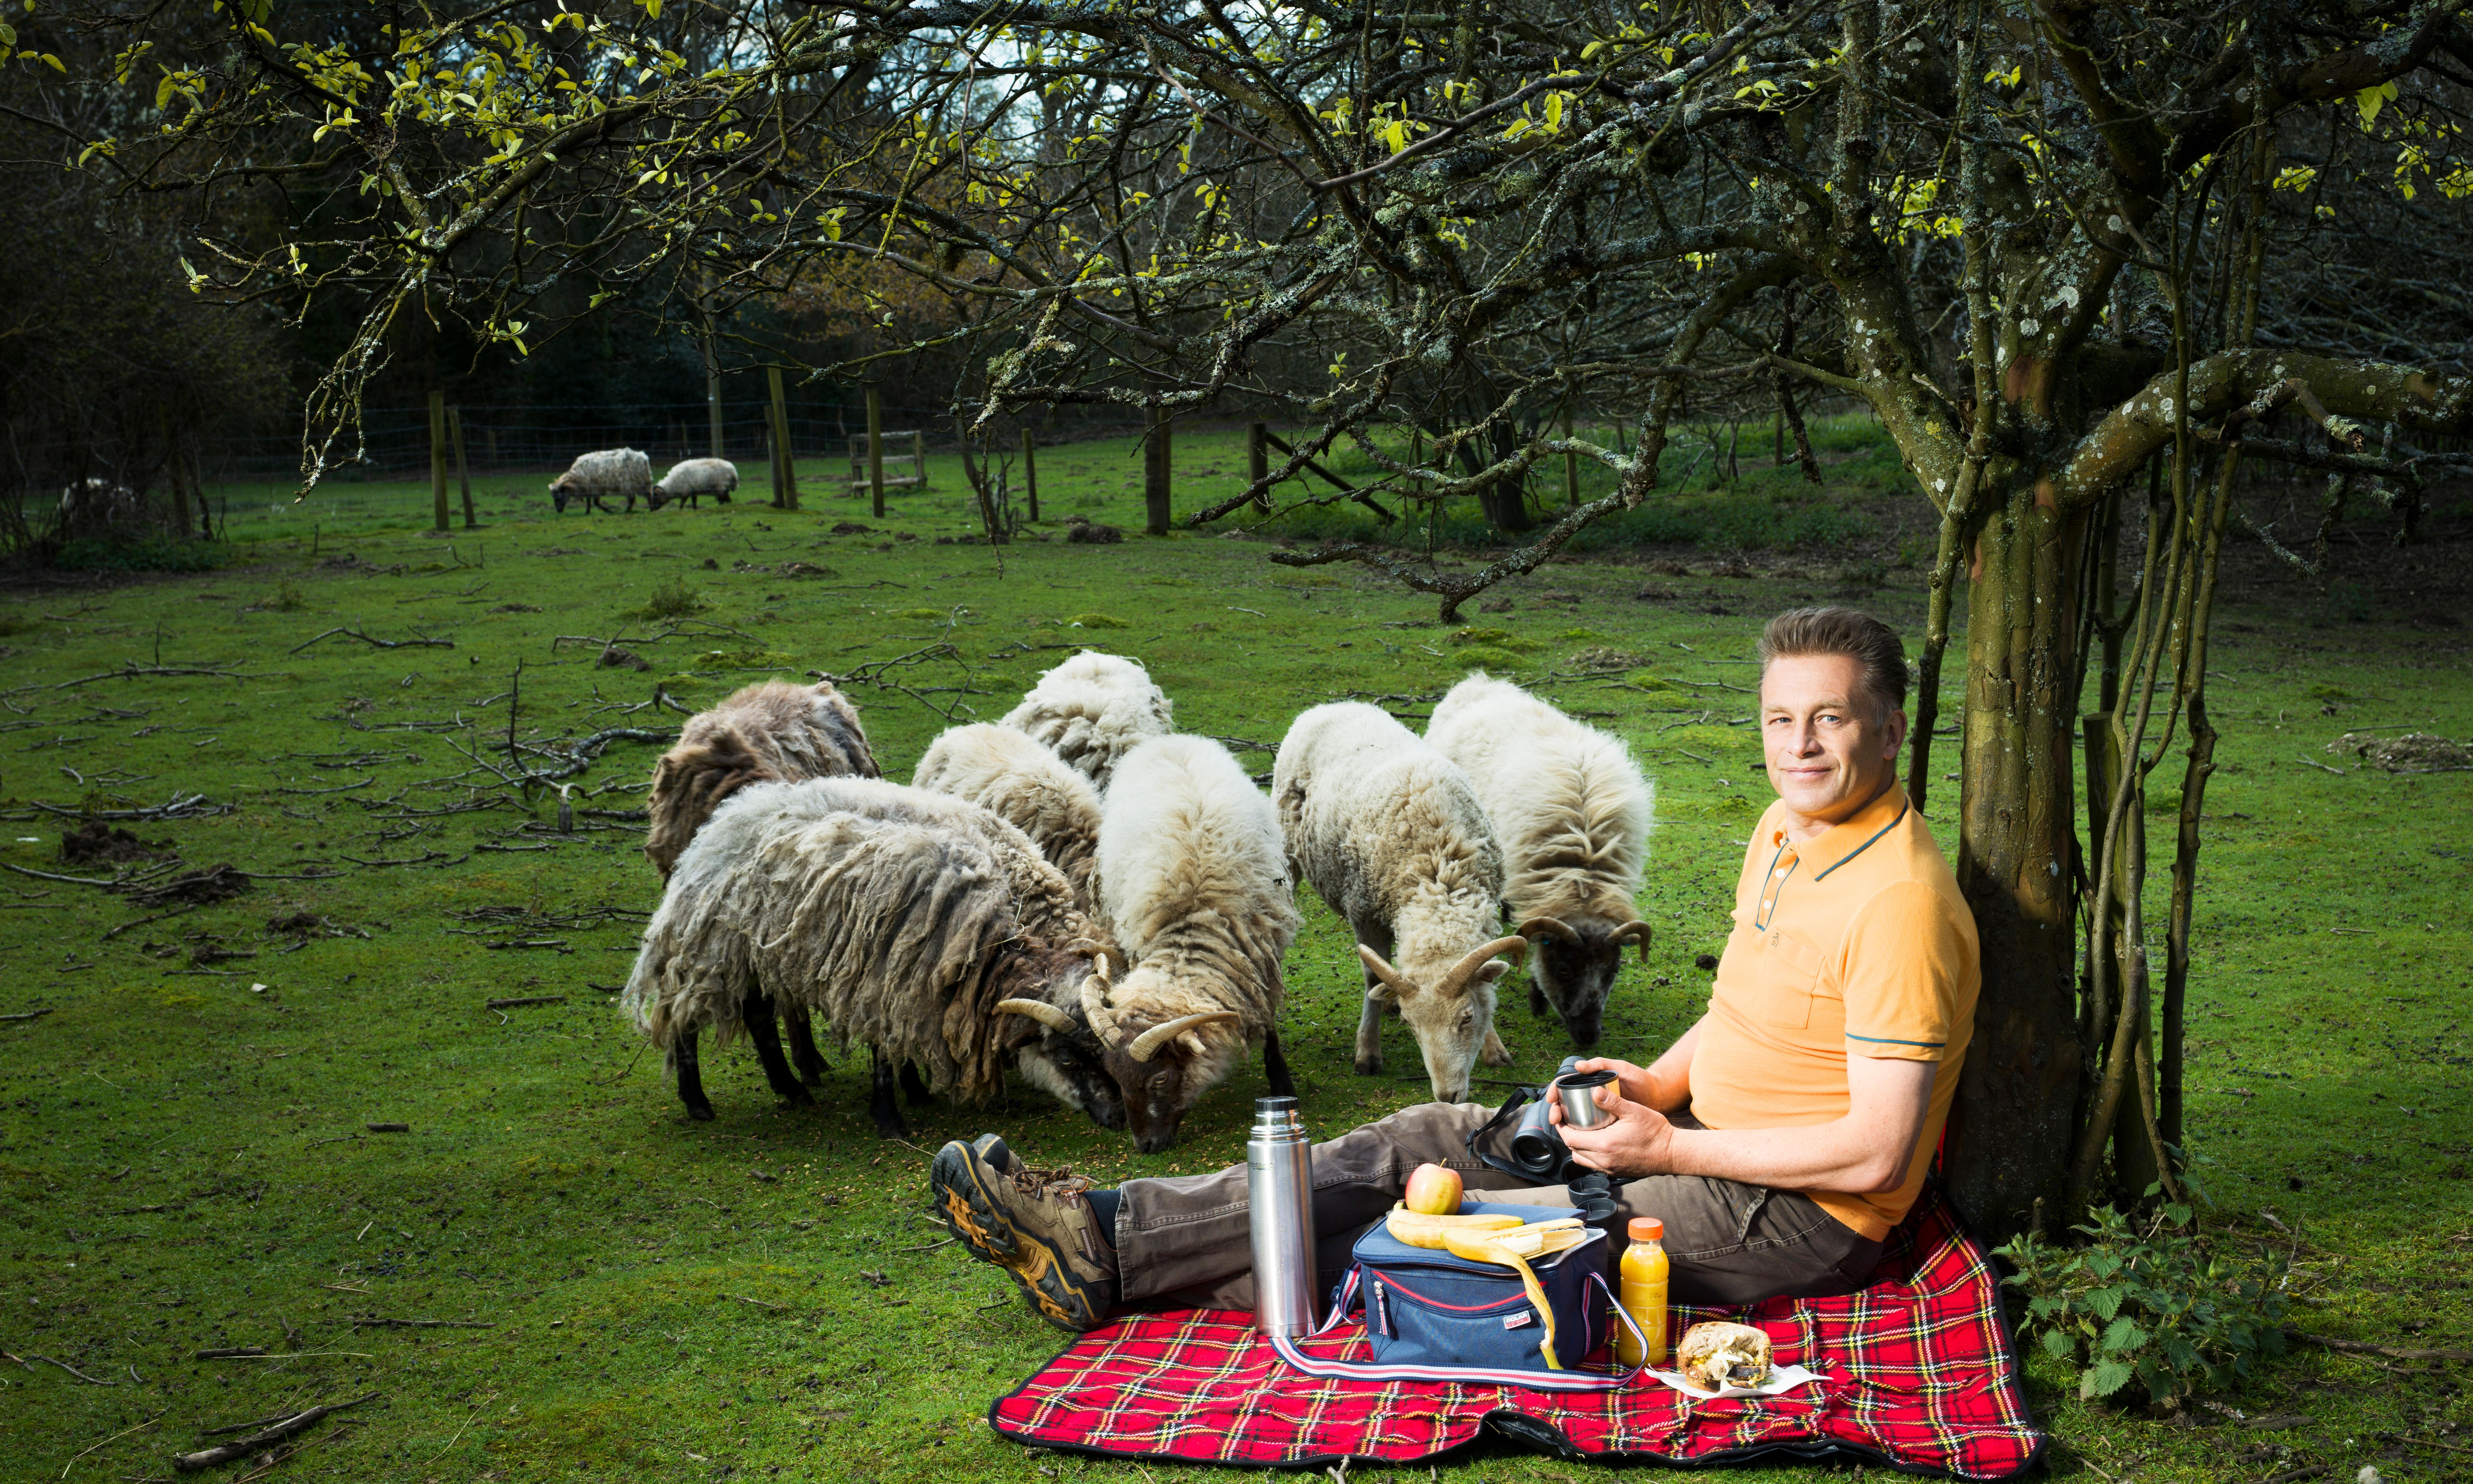 Chris Packham: There's nothing I can do about abuse. I just have to understand it and work harder